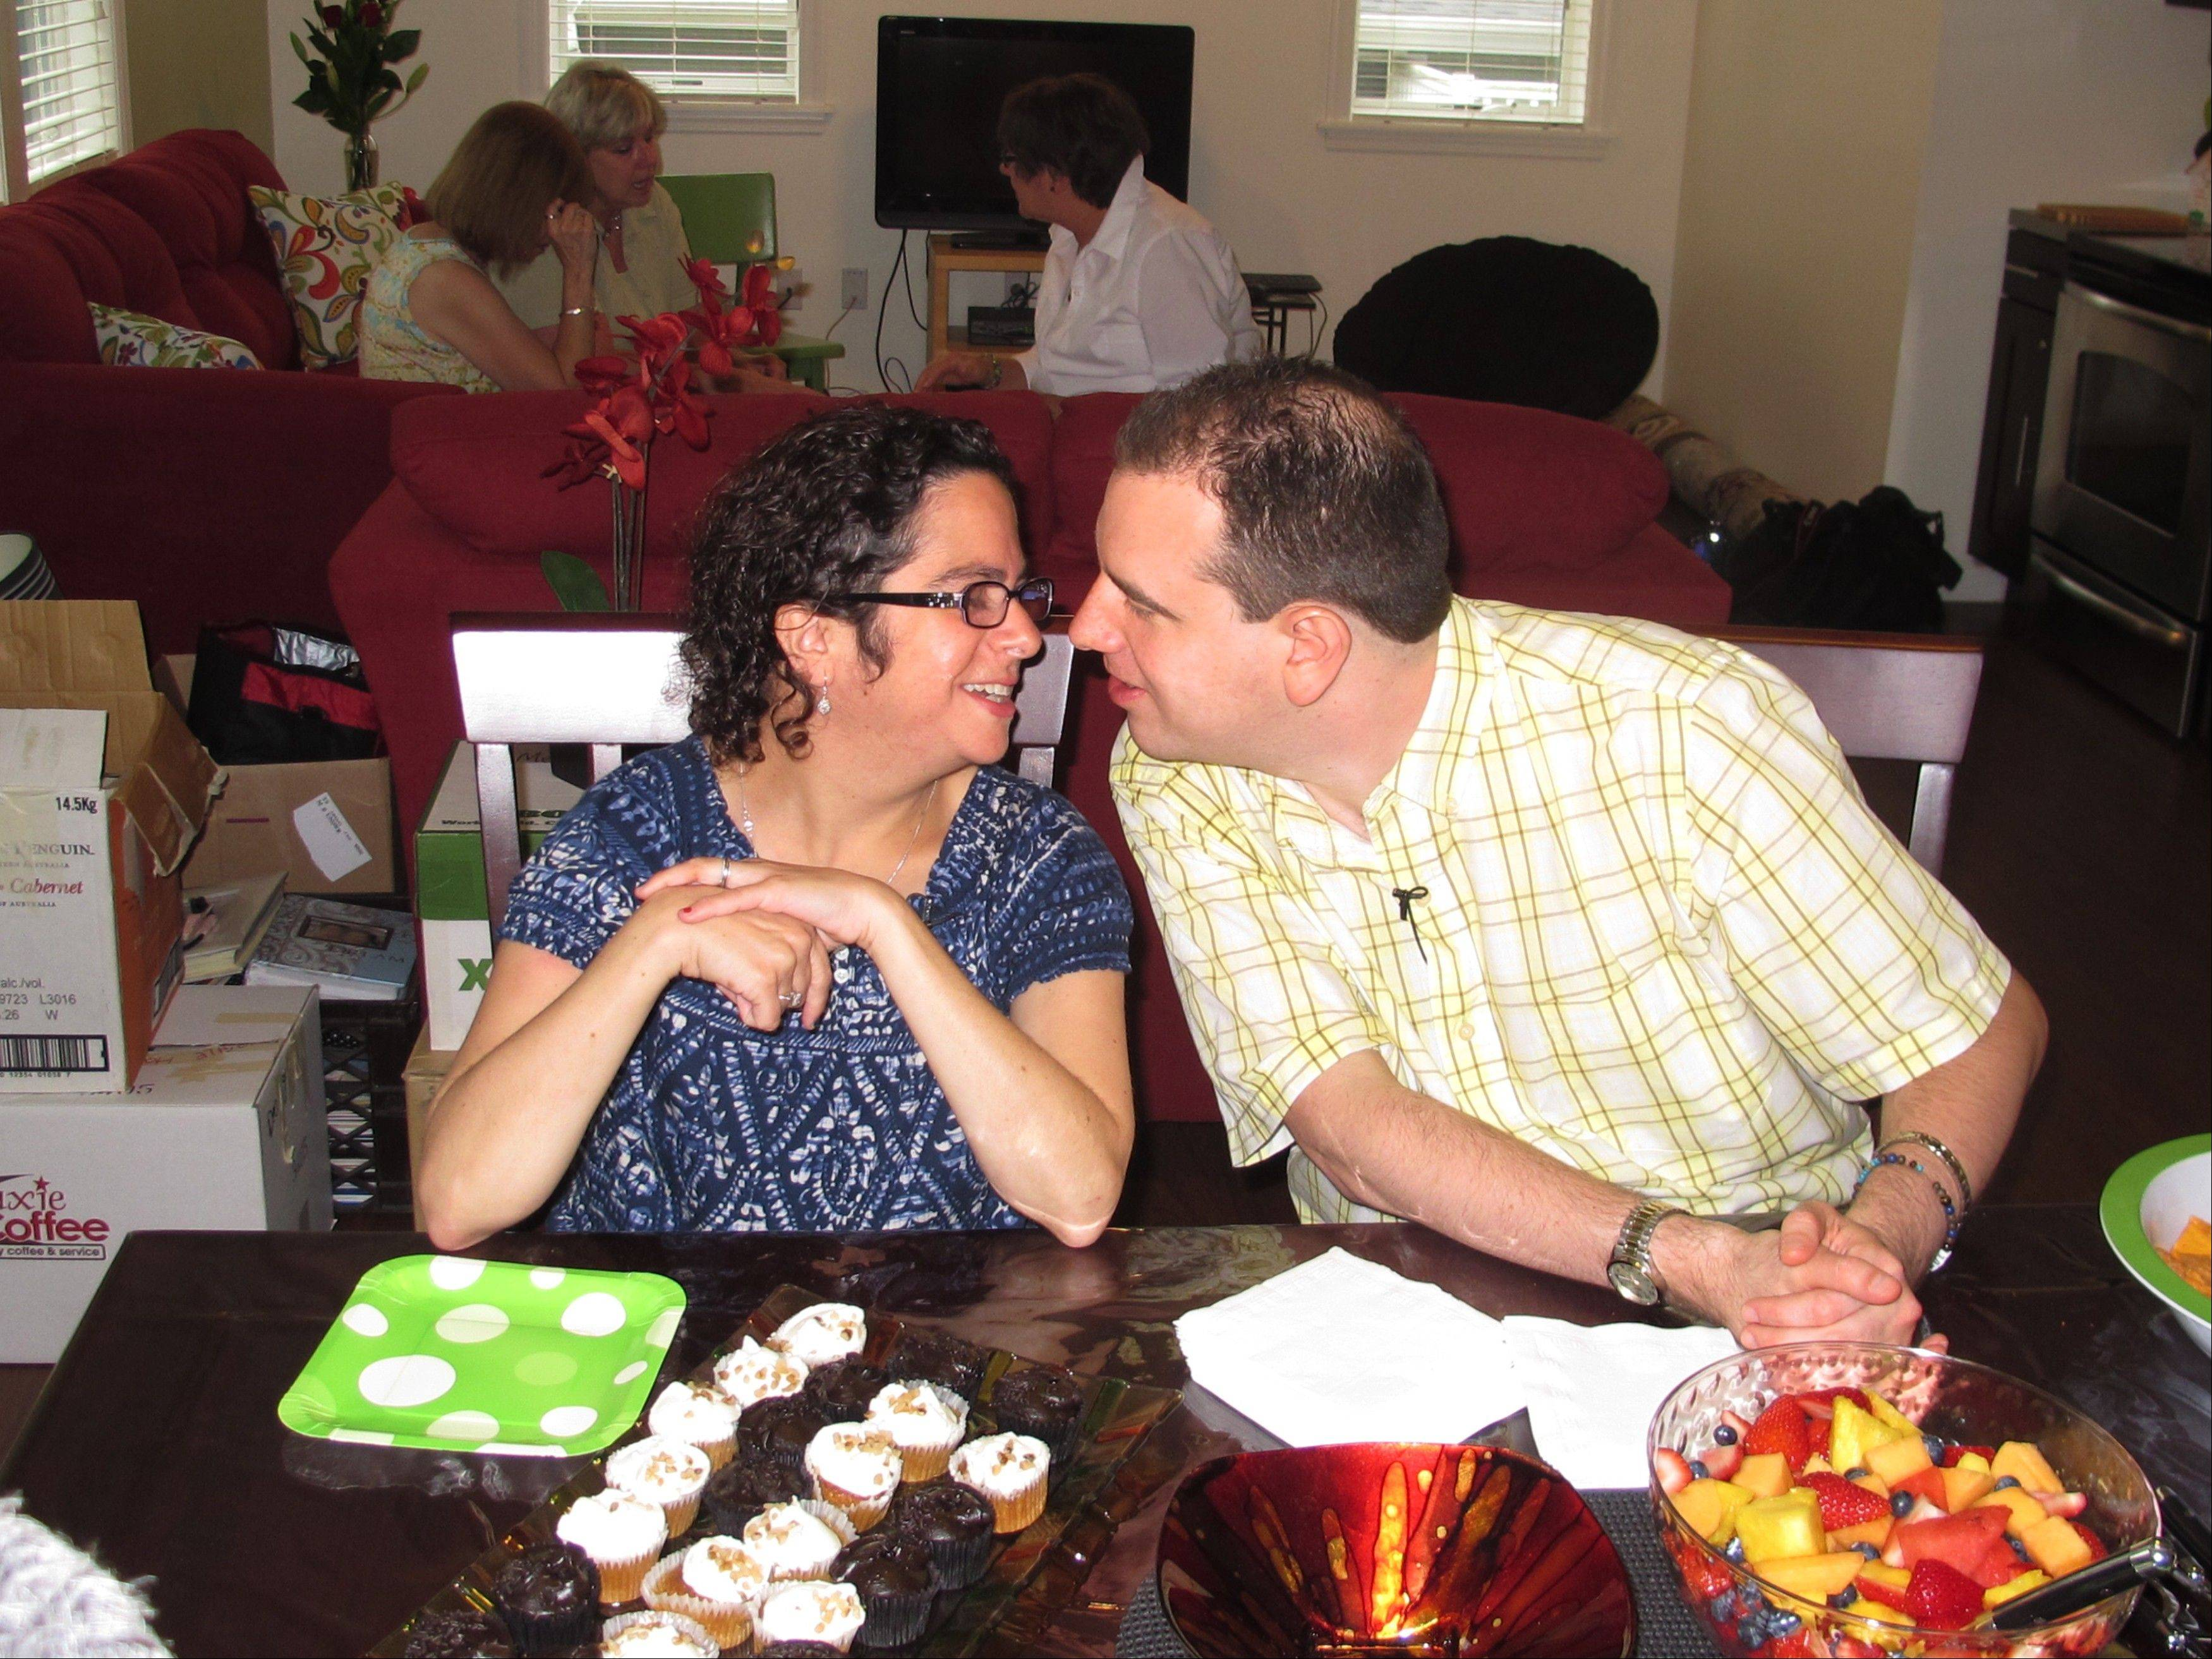 In this photo taken Monday, July 1, 2013, newlyweds Paul and Hava Forziano celebrate their first day in their new apartment at a group home in Riverhead, N.Y. The mentally disabled couple started a court fight after the group homes where they formerly lived denied them the opportunity to live together as a married couple.